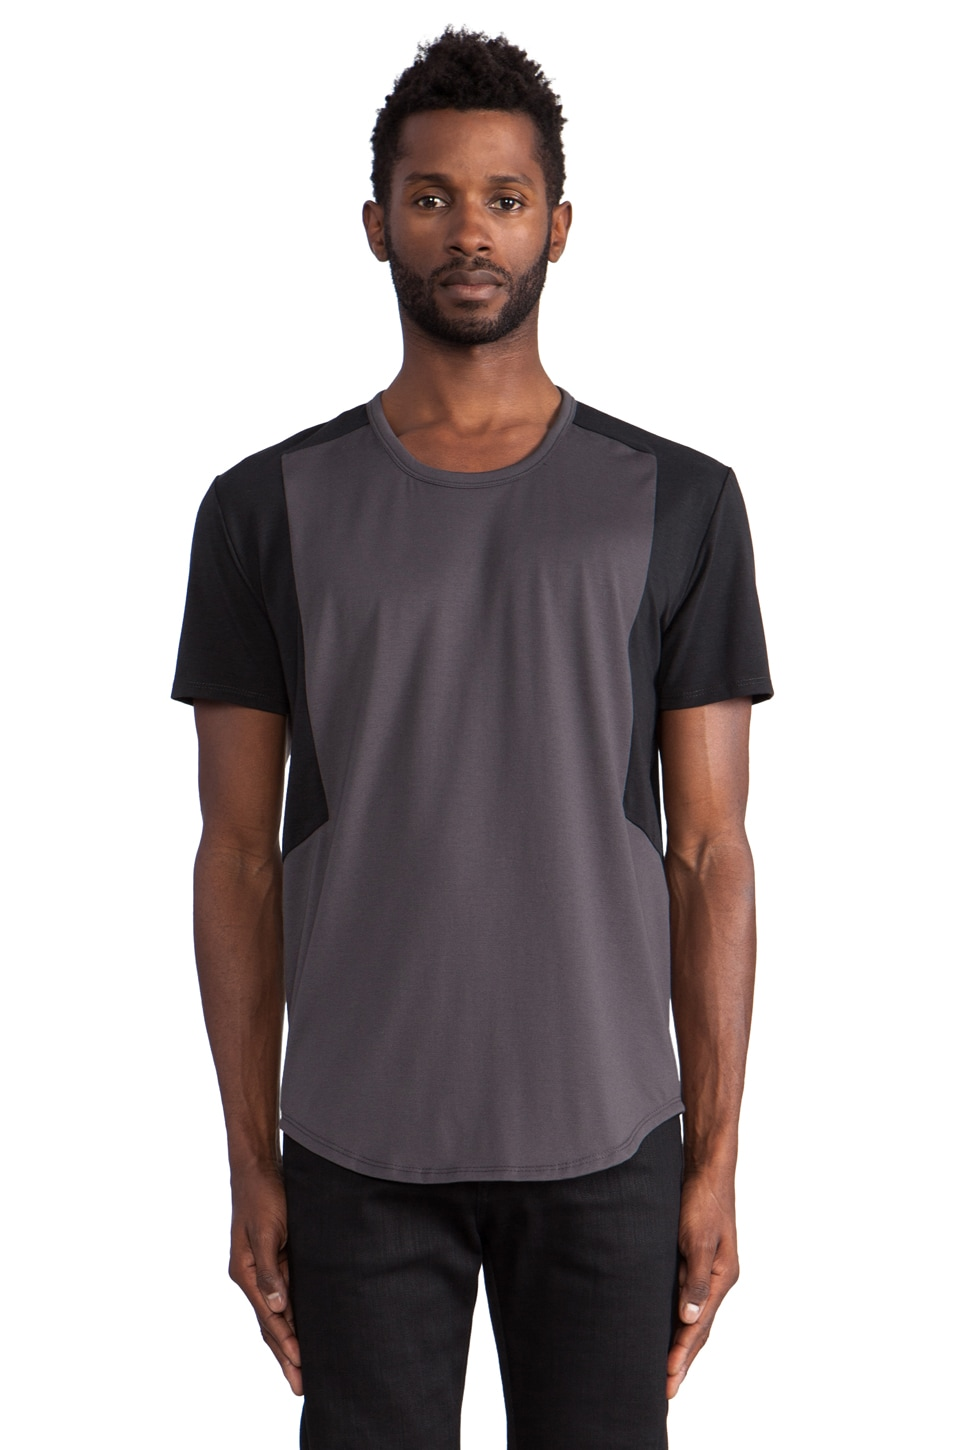 ISAORA Wik-Tech Shoulder Panel Tee in Black/Charcoal